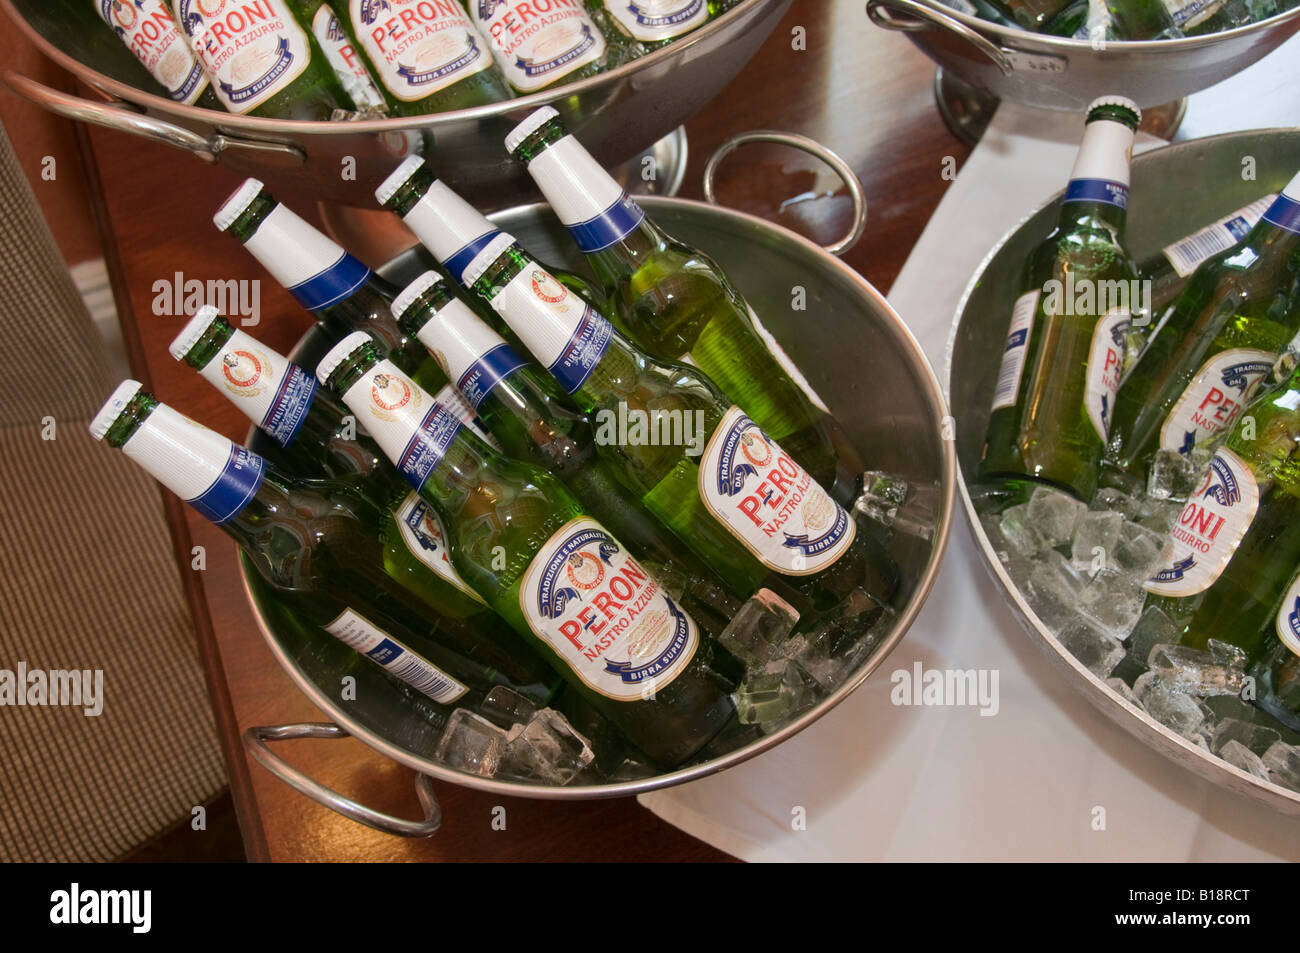 Bottles Of Peroni Beer Cooling In Buckets Of Ice At A Wedding Stock